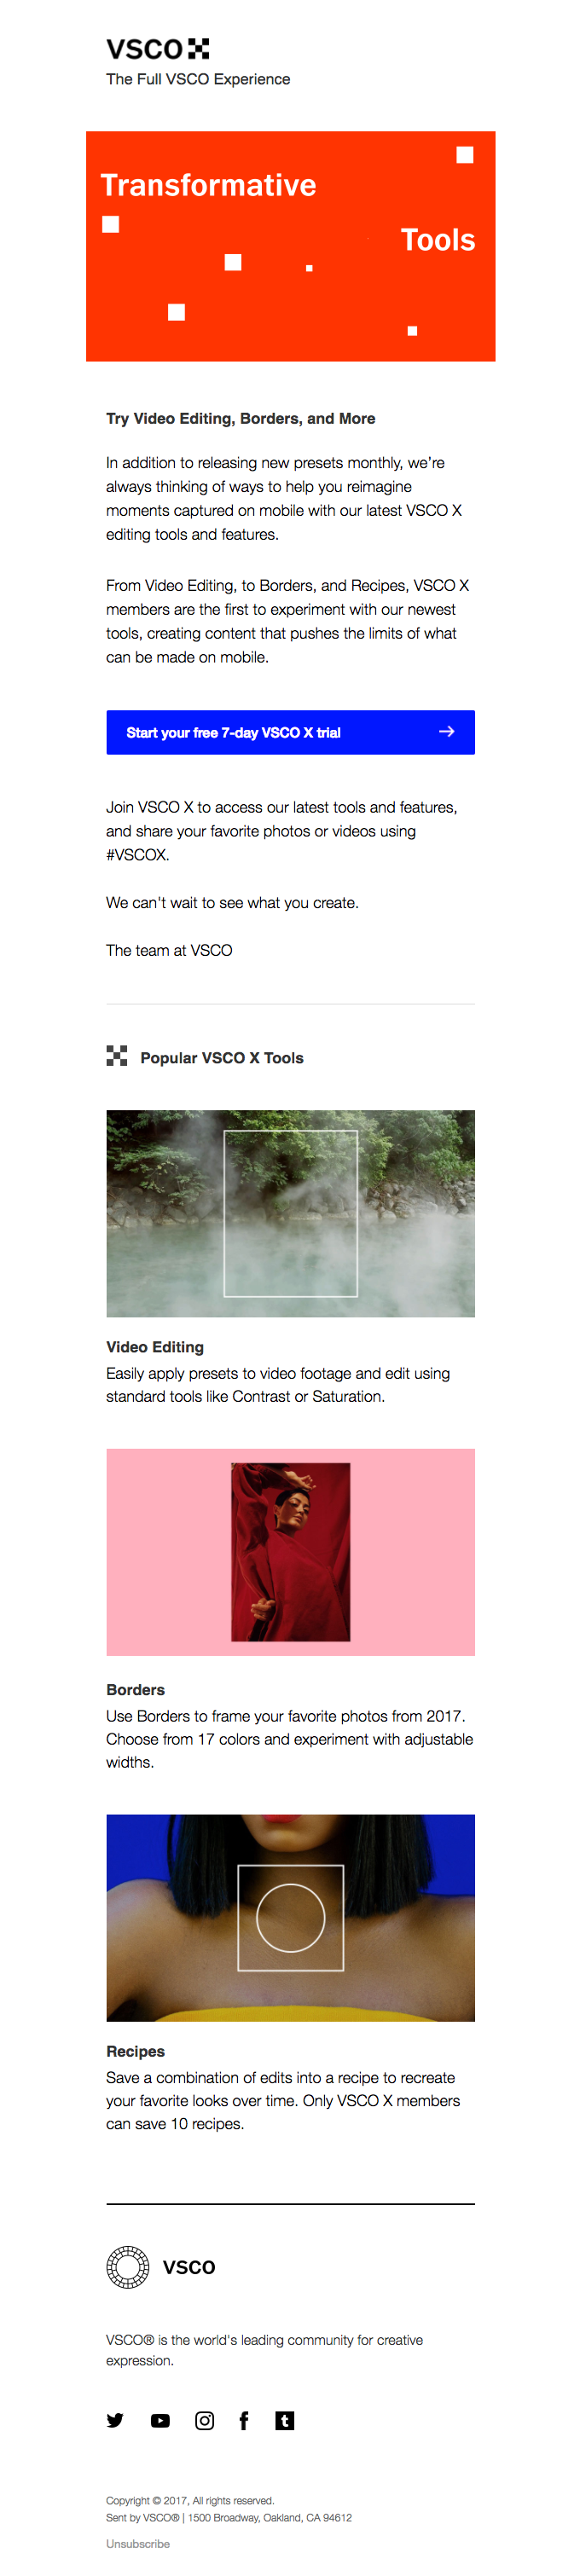 VSCO's Newest Editing Tools